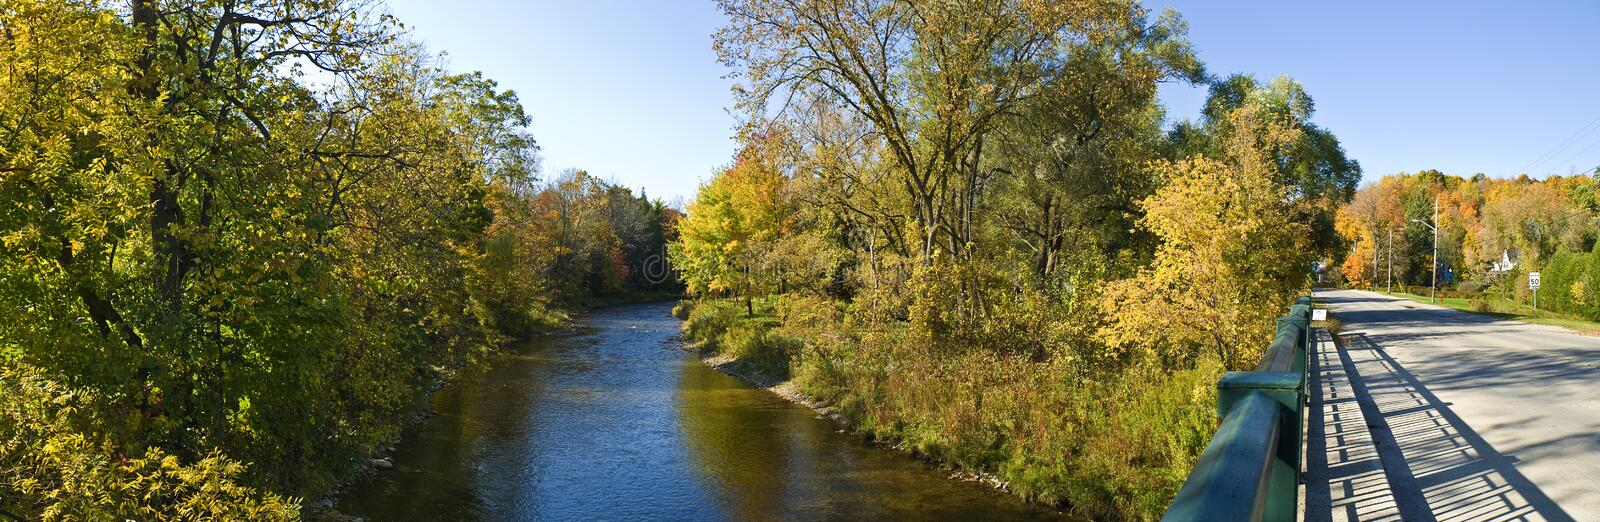 Download River And A Bridge In Autumn Stock Photo - Image: 16446986